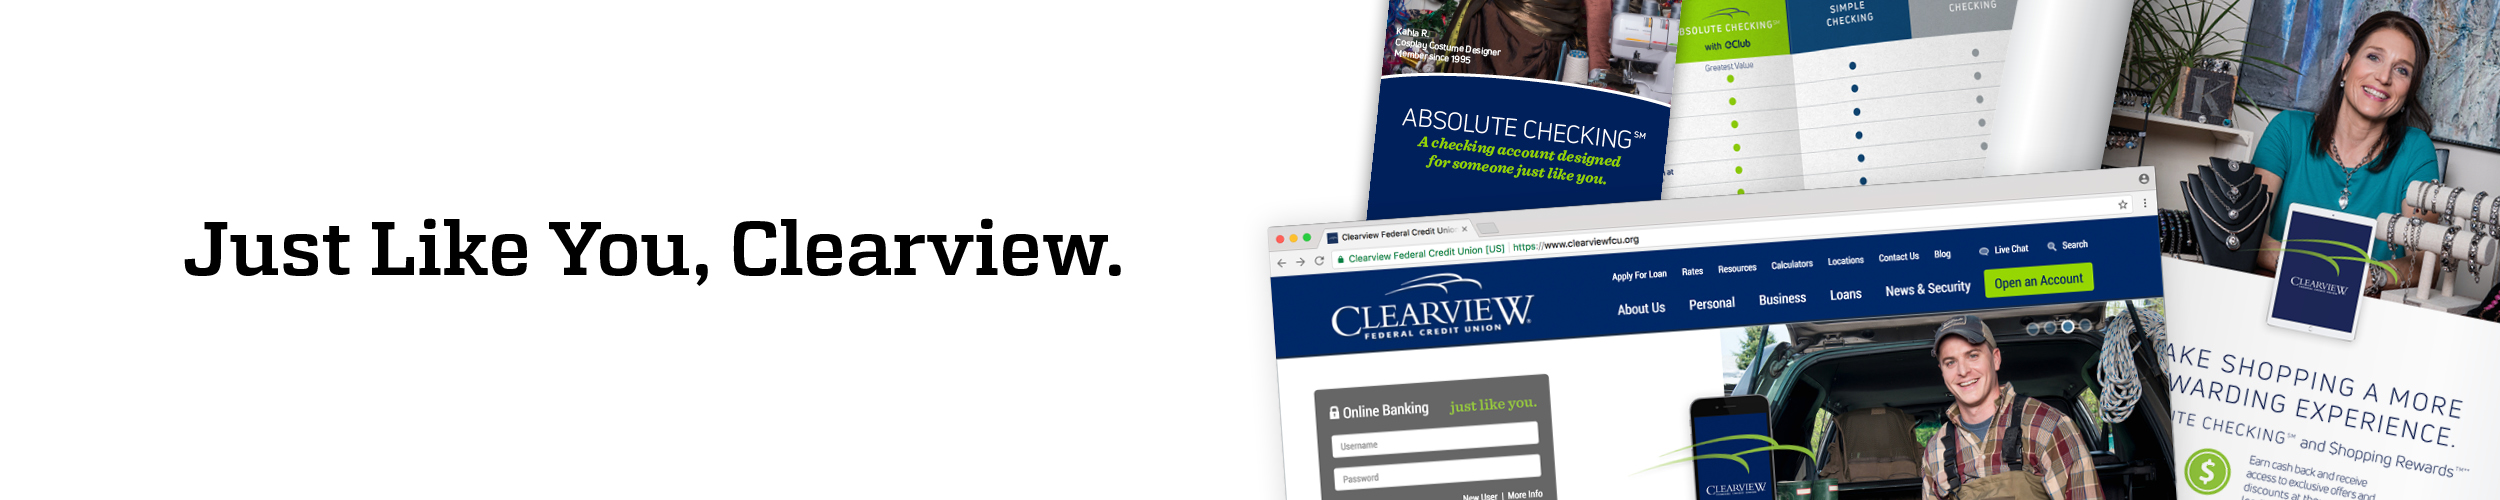 CLEARpages_Header.jpg